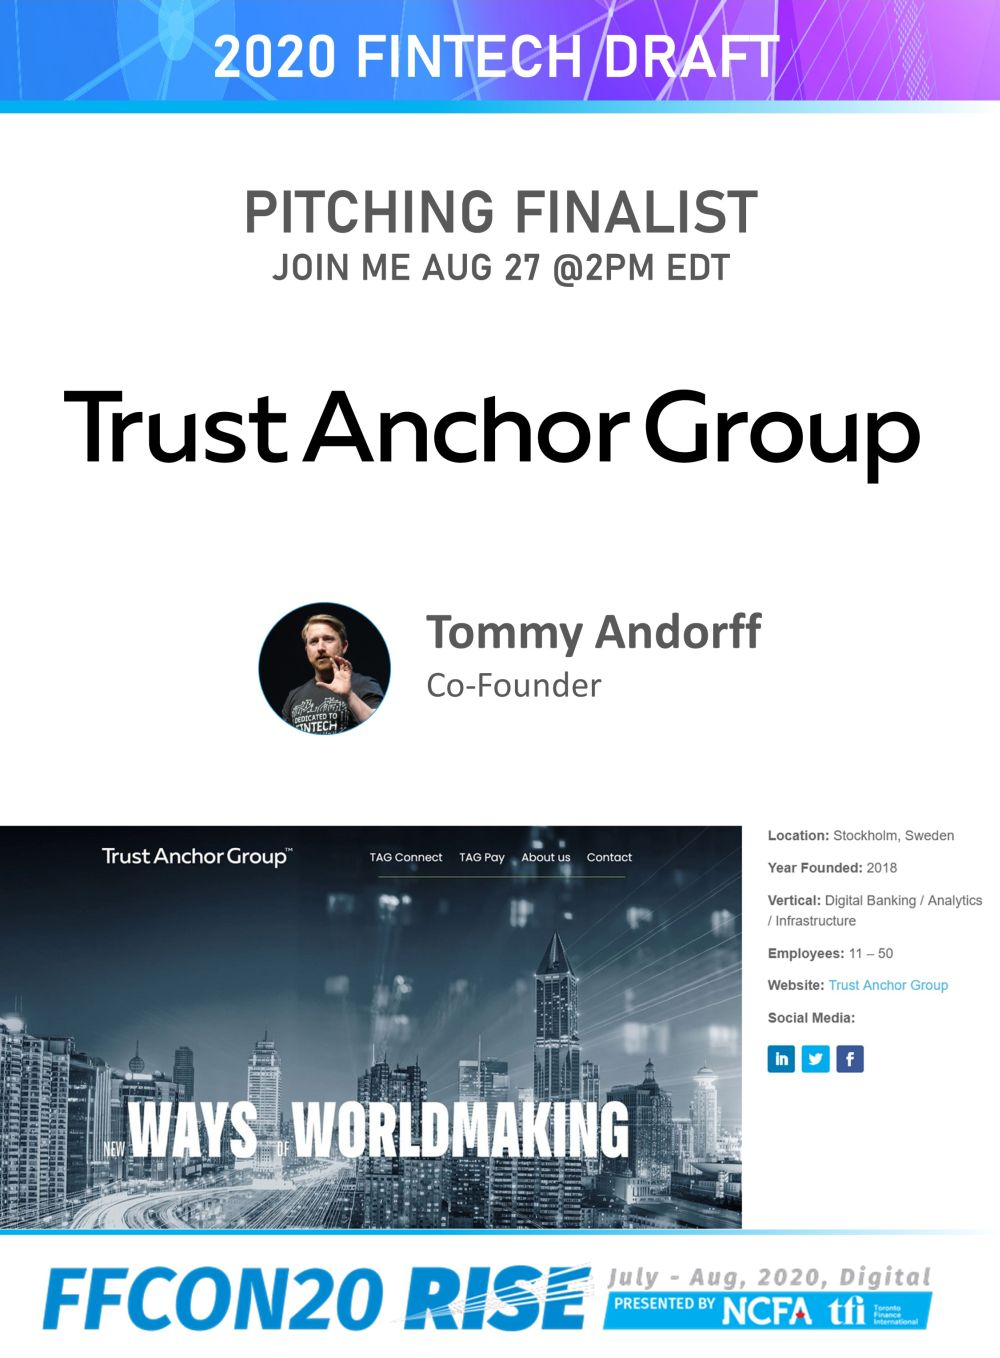 FFCON20 Pitching Finalist card - Trust Anchor Group resize